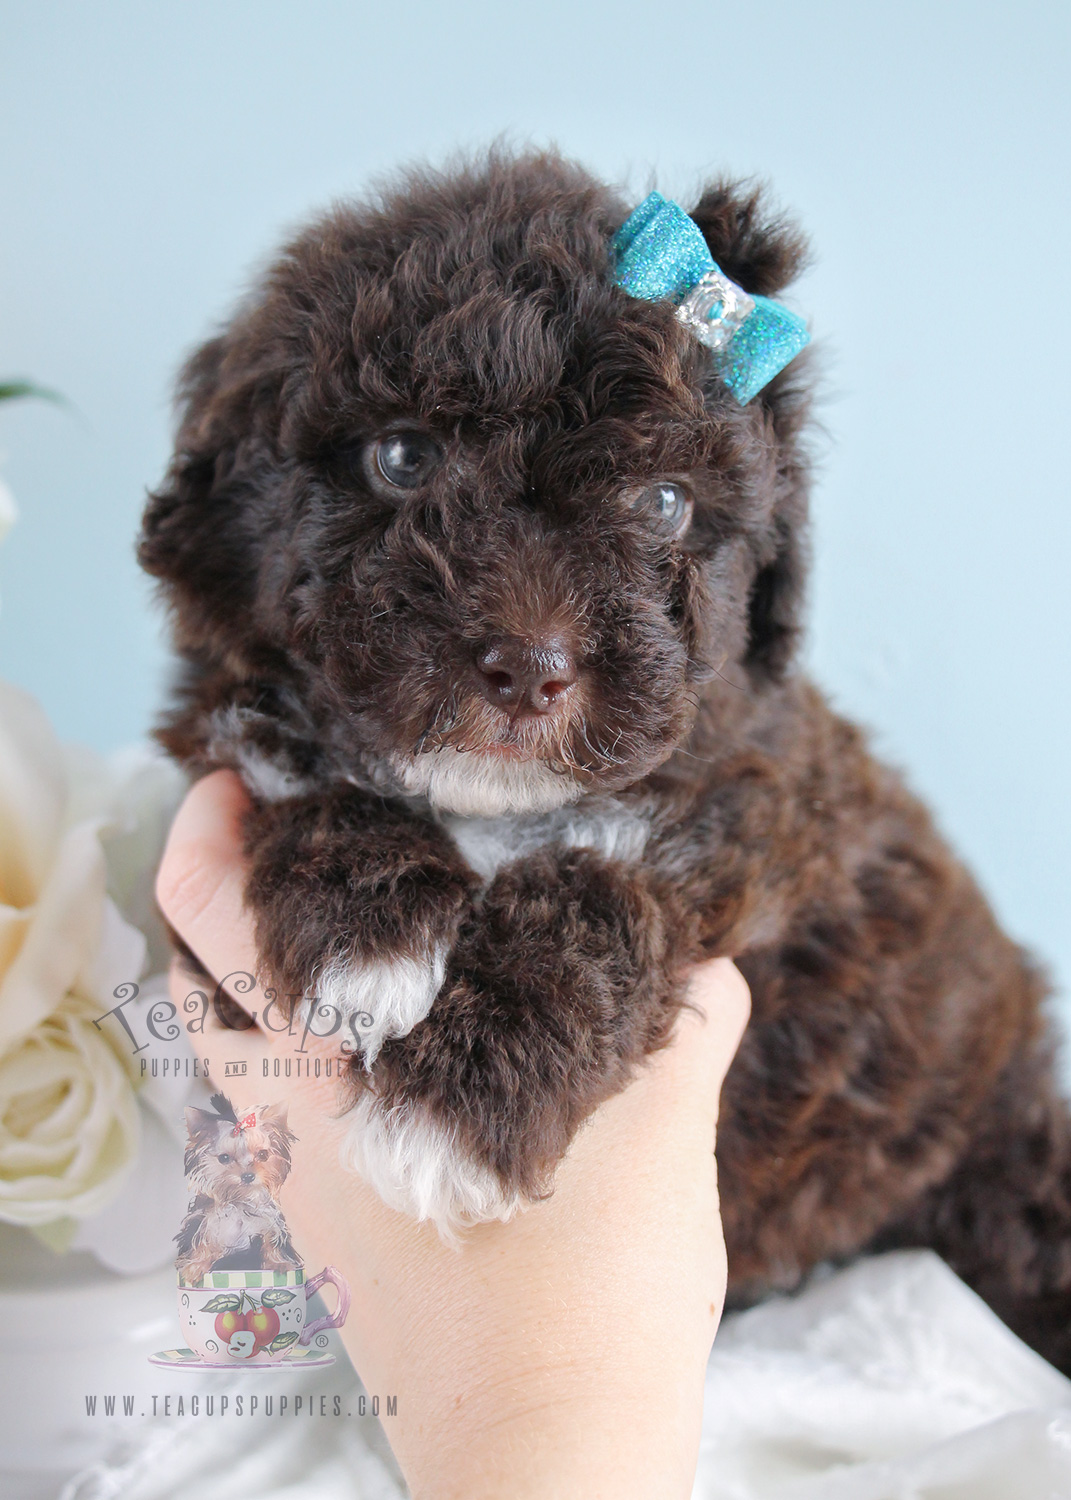 Toy Poodle For Sale 258 Teacups Puppies